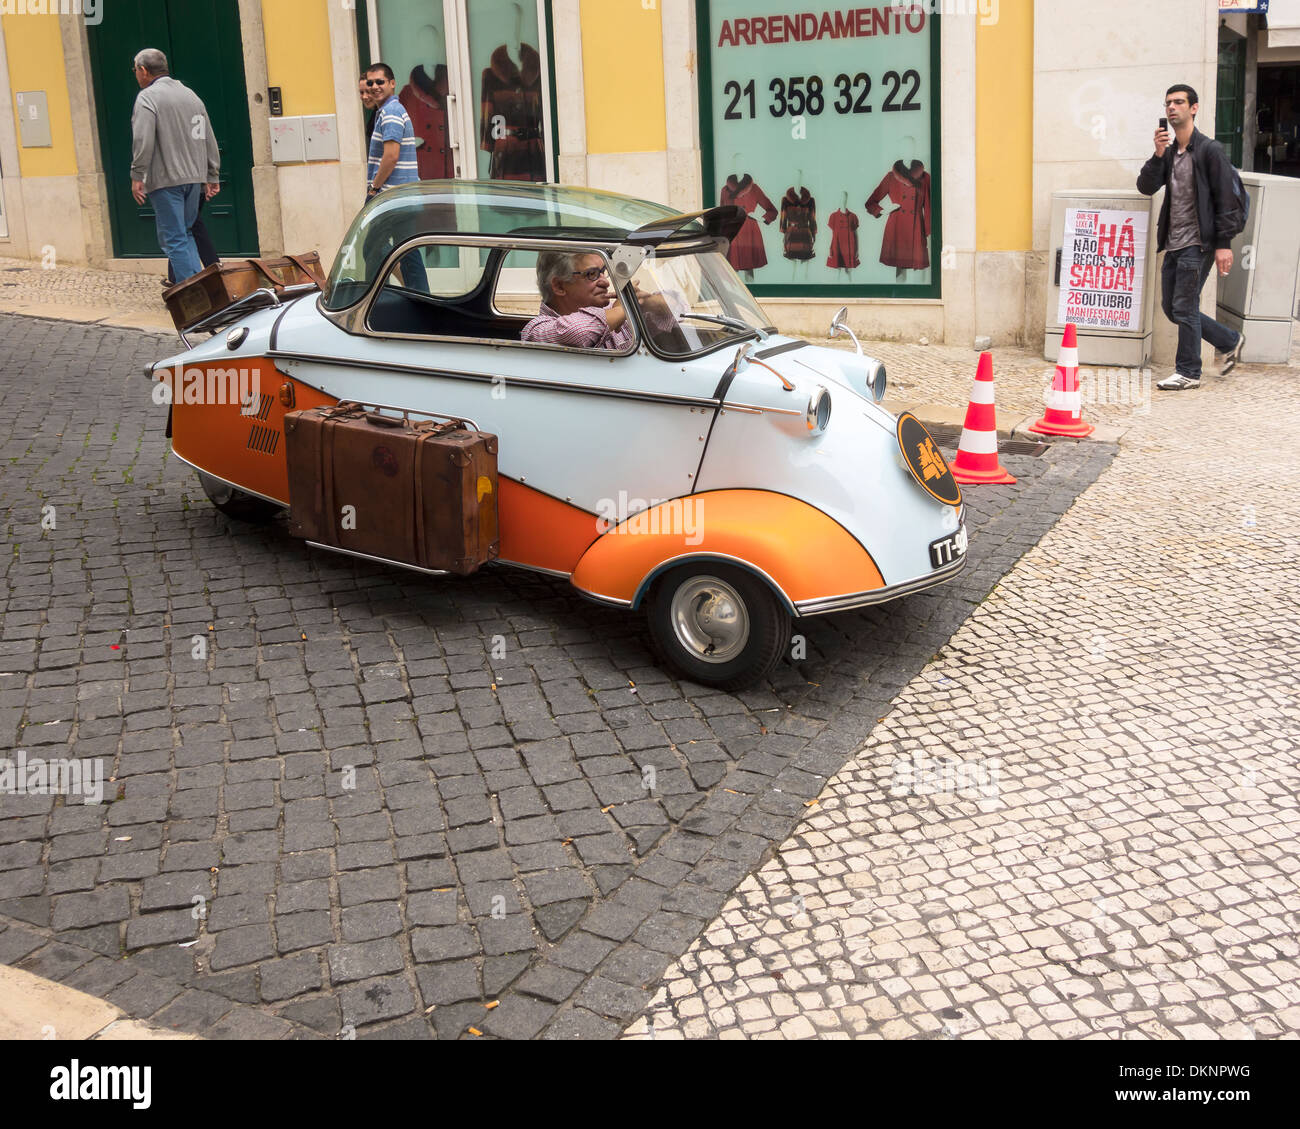 The sights of, overlooking, around, in the city town of  Lisbon, Portugal, Europe.  The Car from the Optimus Kanguru 4G Advert - Stock Image